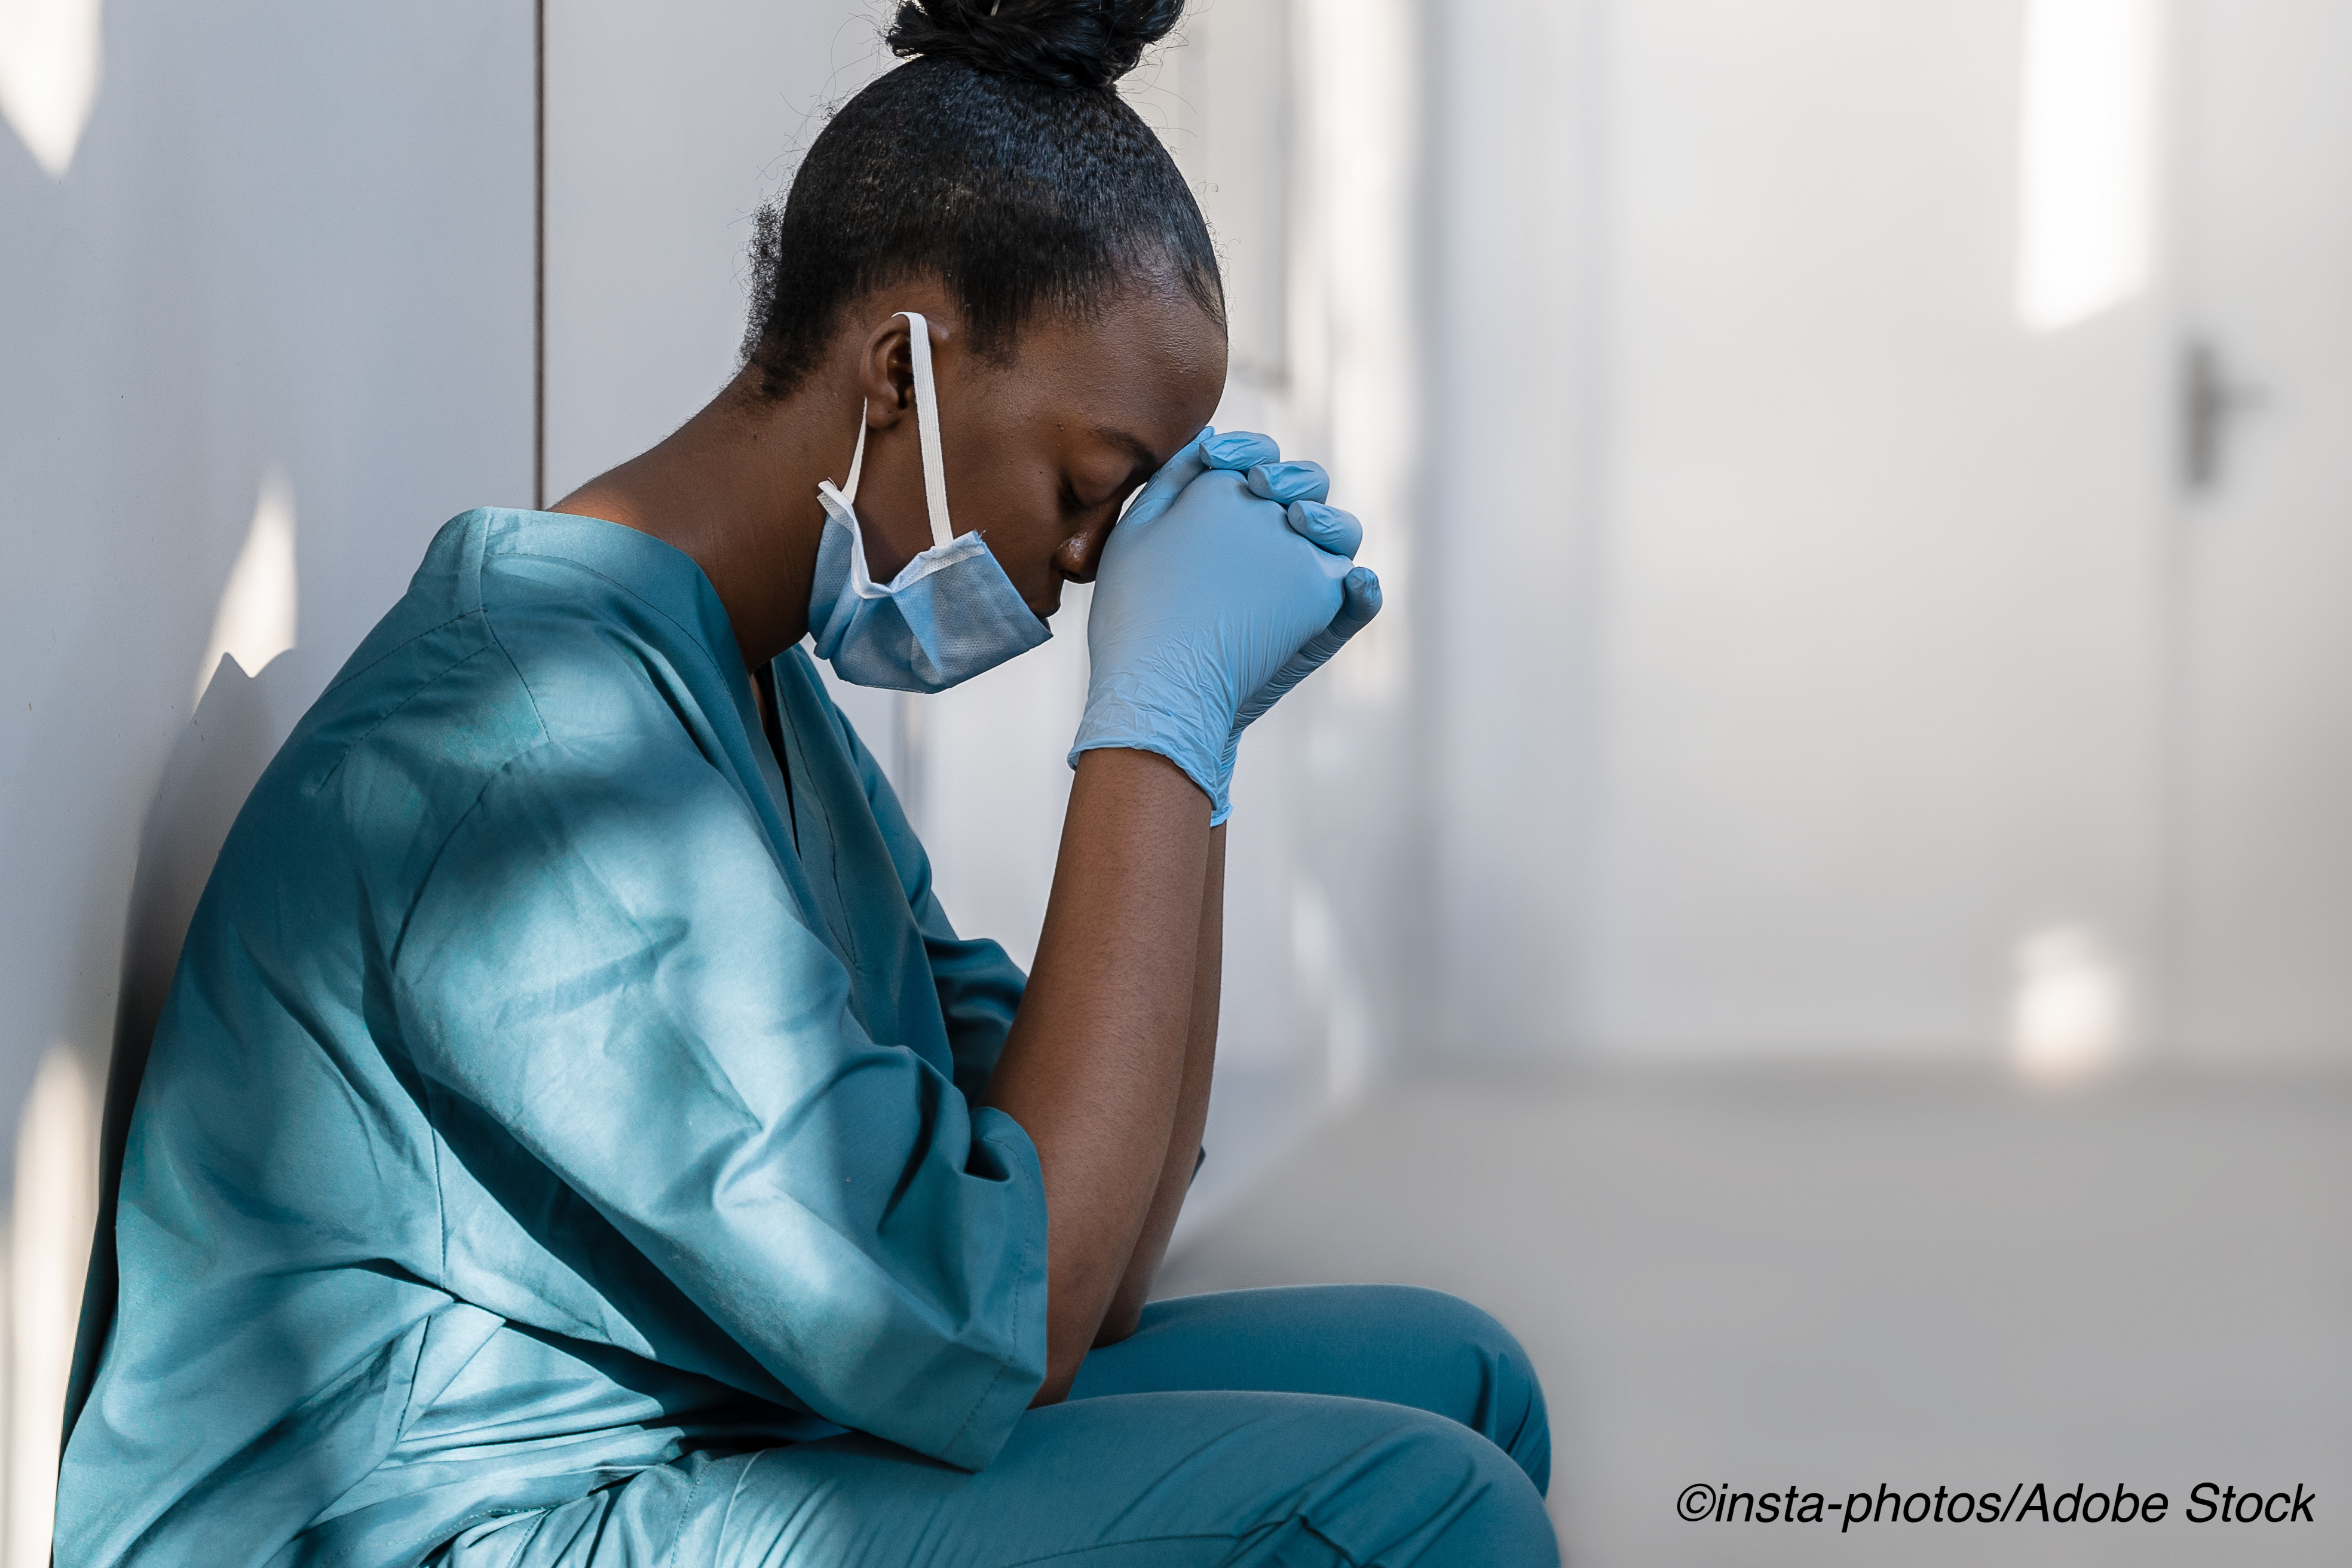 Burnout Hits Nurses Early in Careers and Leaves Lasting Impression